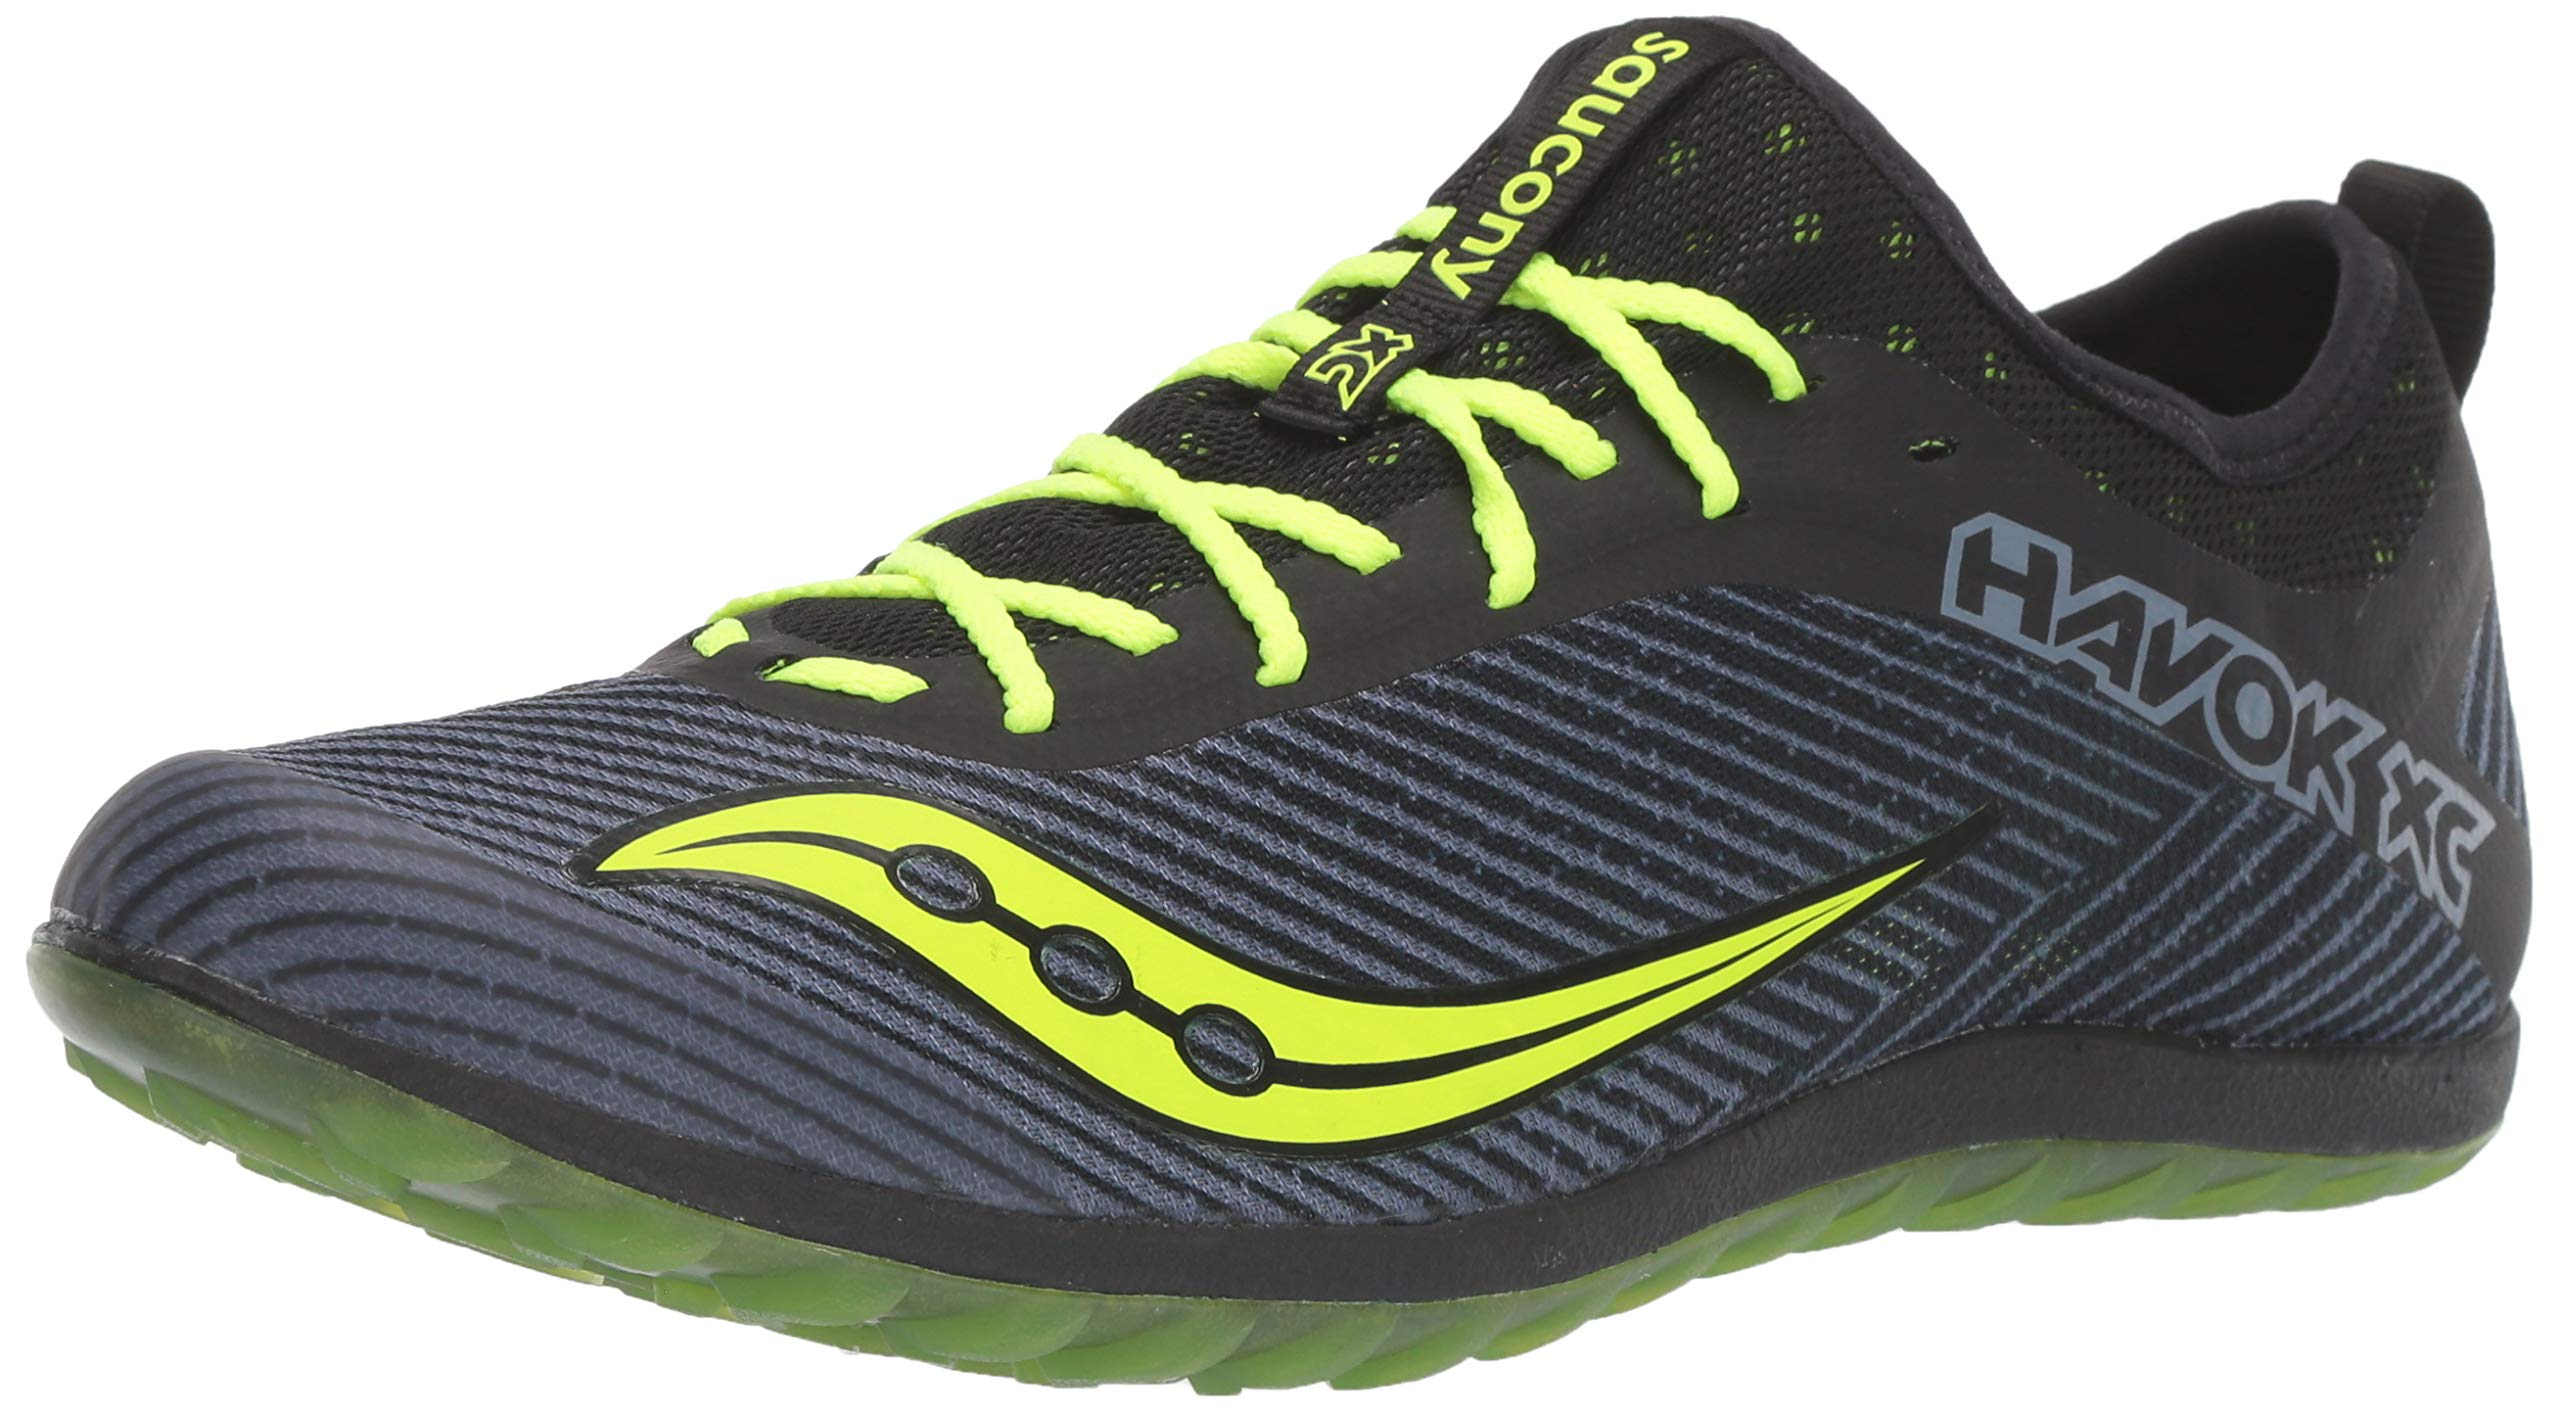 Saucony Men's Havok XC2 Flat Track and Field Shoe, Black/Citron, 8 Medium US by Saucony